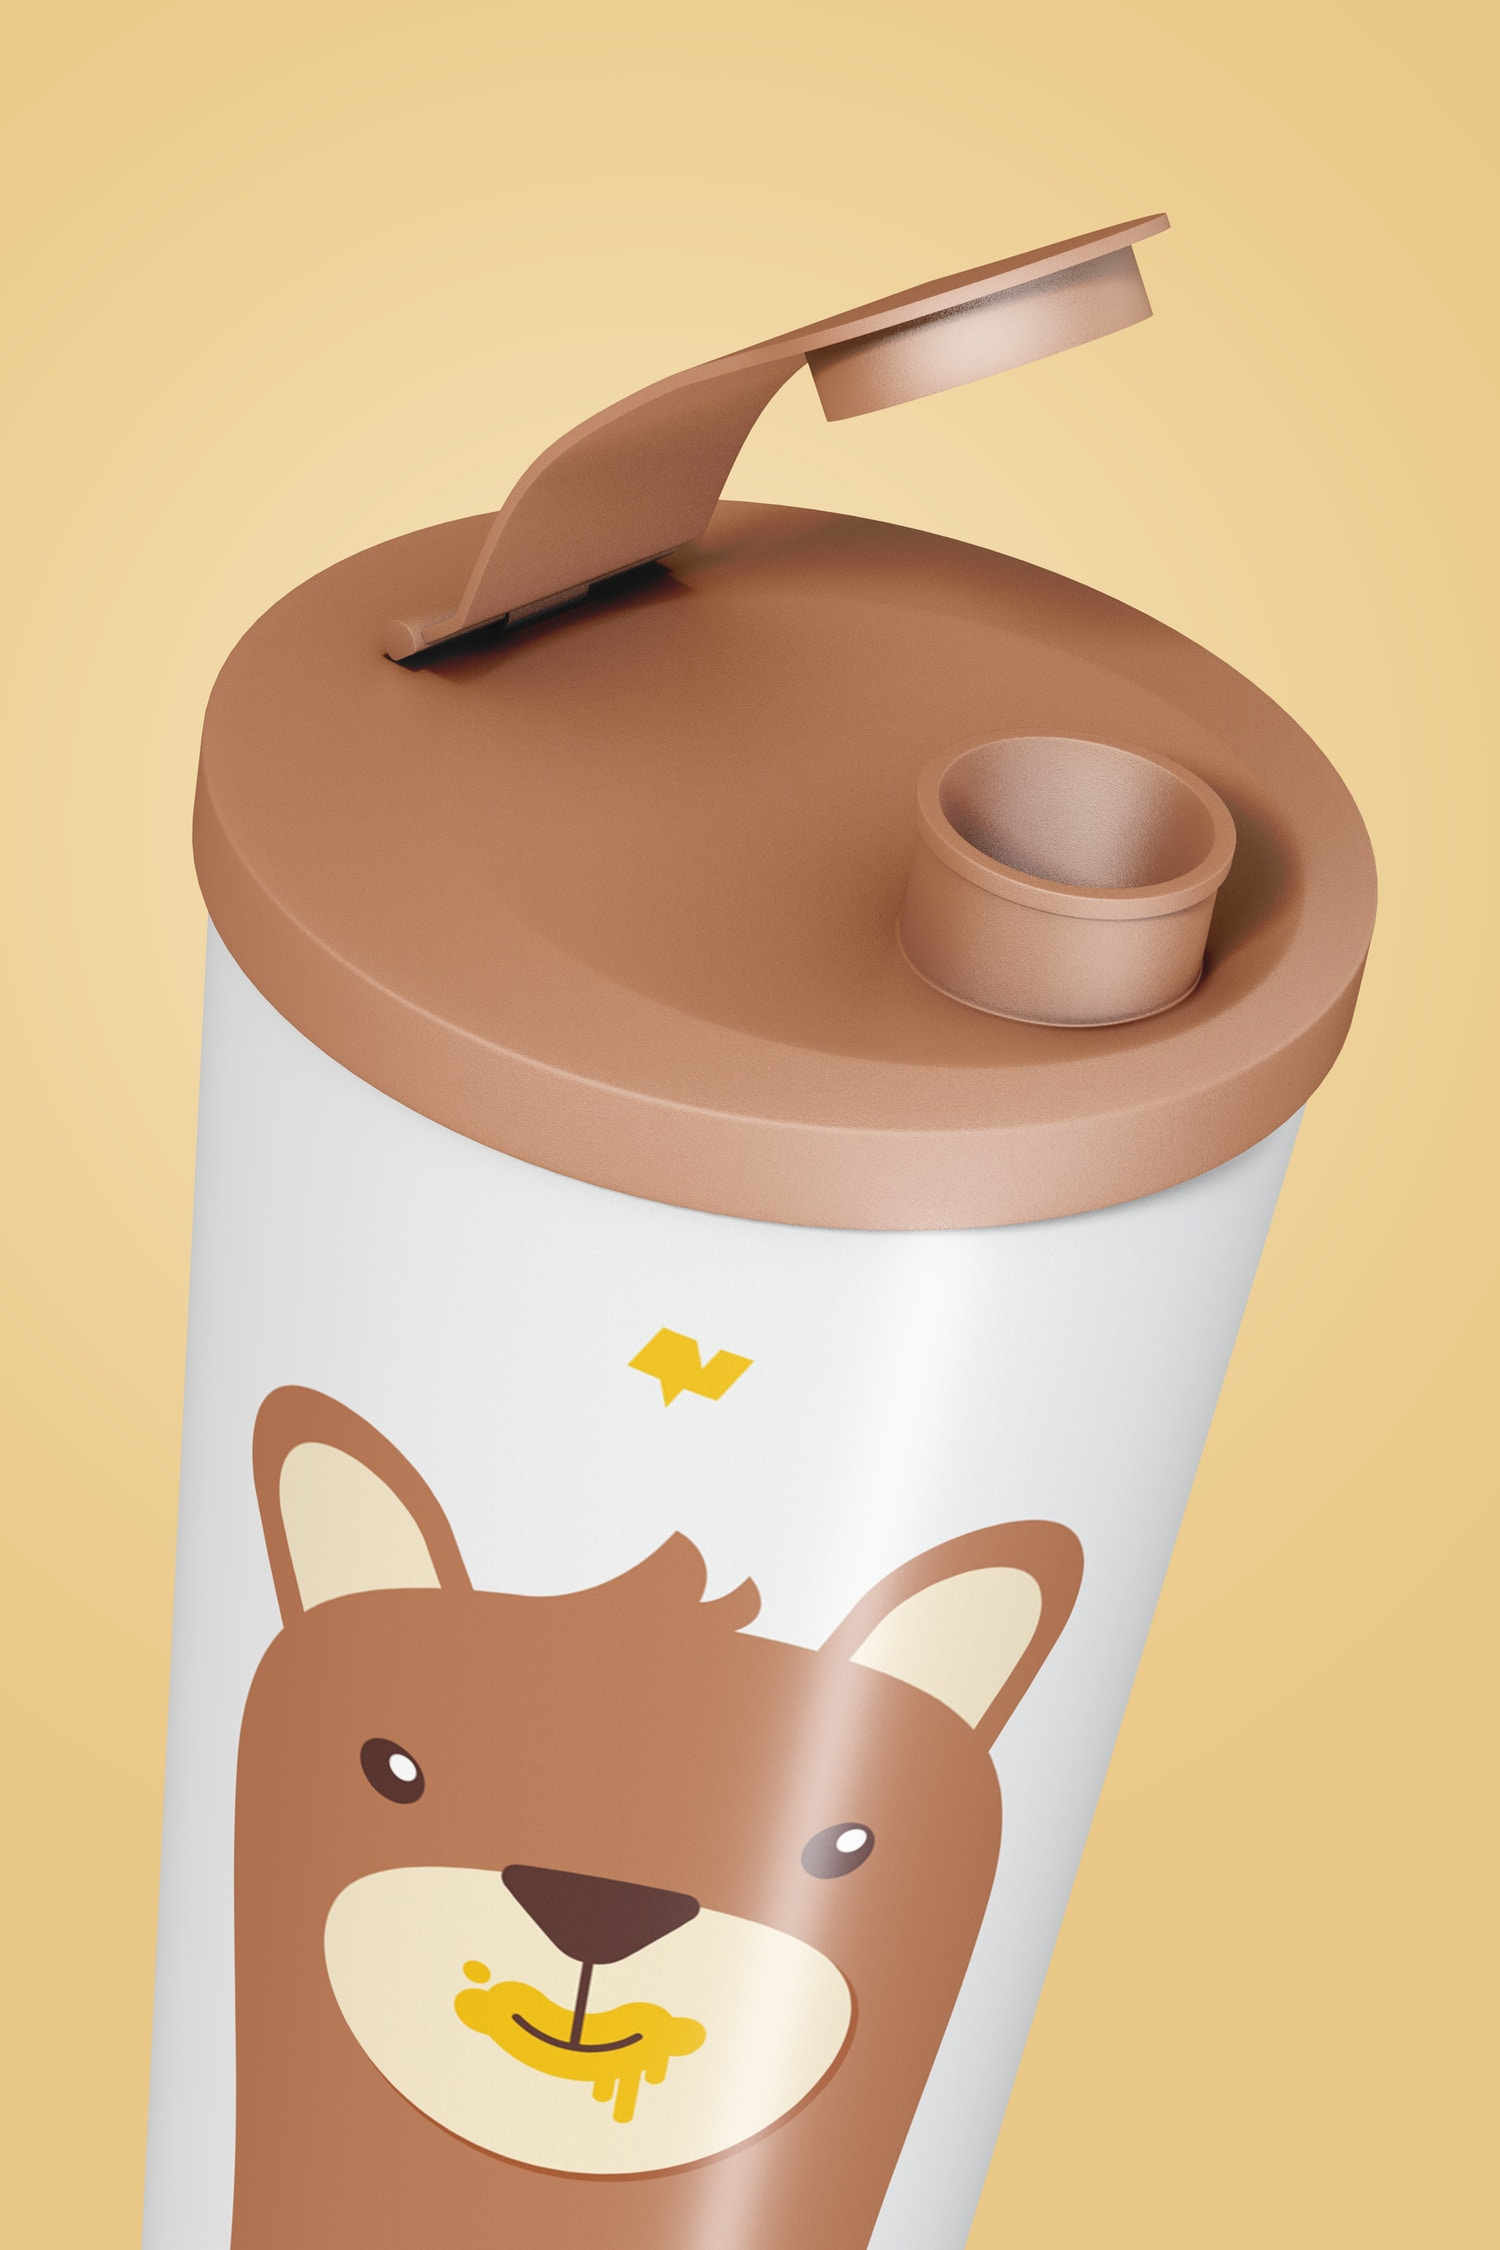 Kids Plastic Drink Cup With Lid Mockup, Close Up